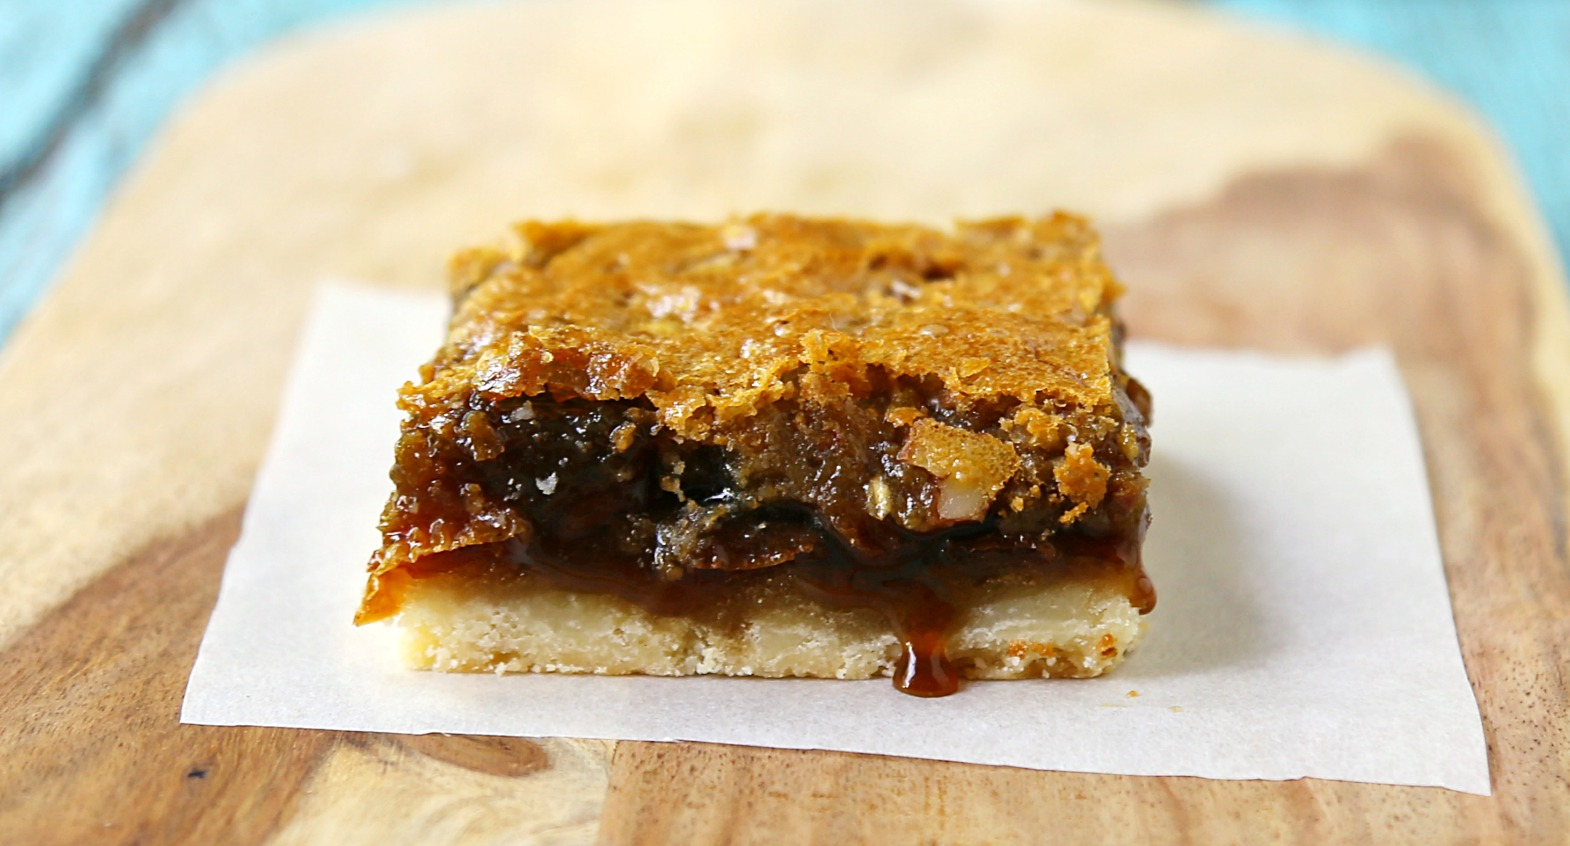 a-piece-of-pecan-butter-tart-bar-recipe-delicious-dessert